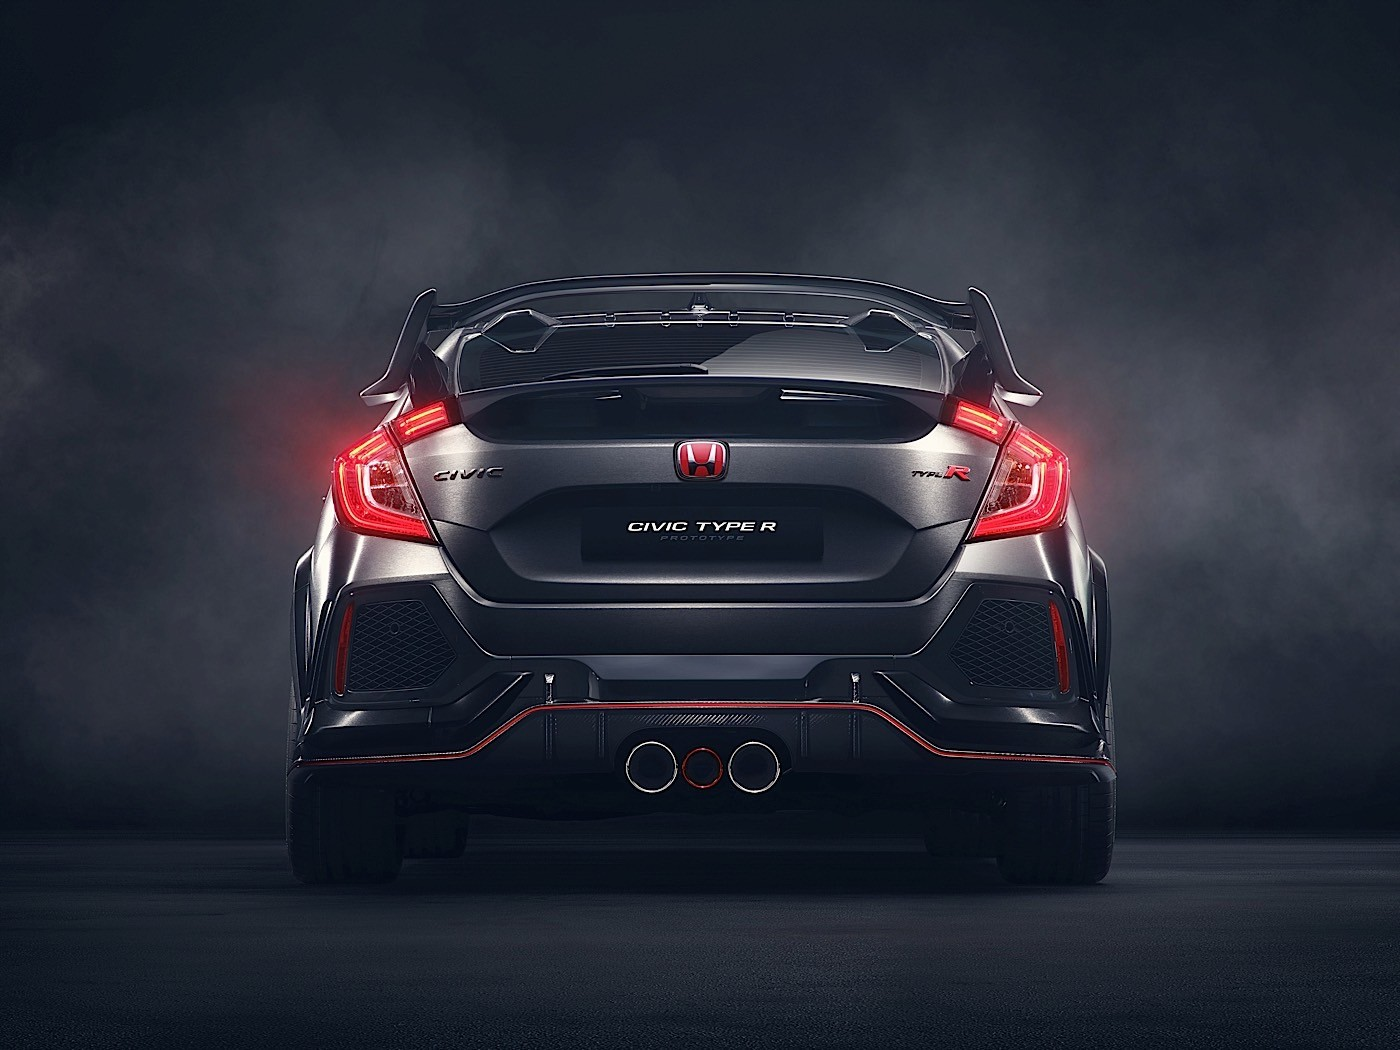 2017 Honda Civic Type R Black Edition Limited to 100 Examples - autoevolution